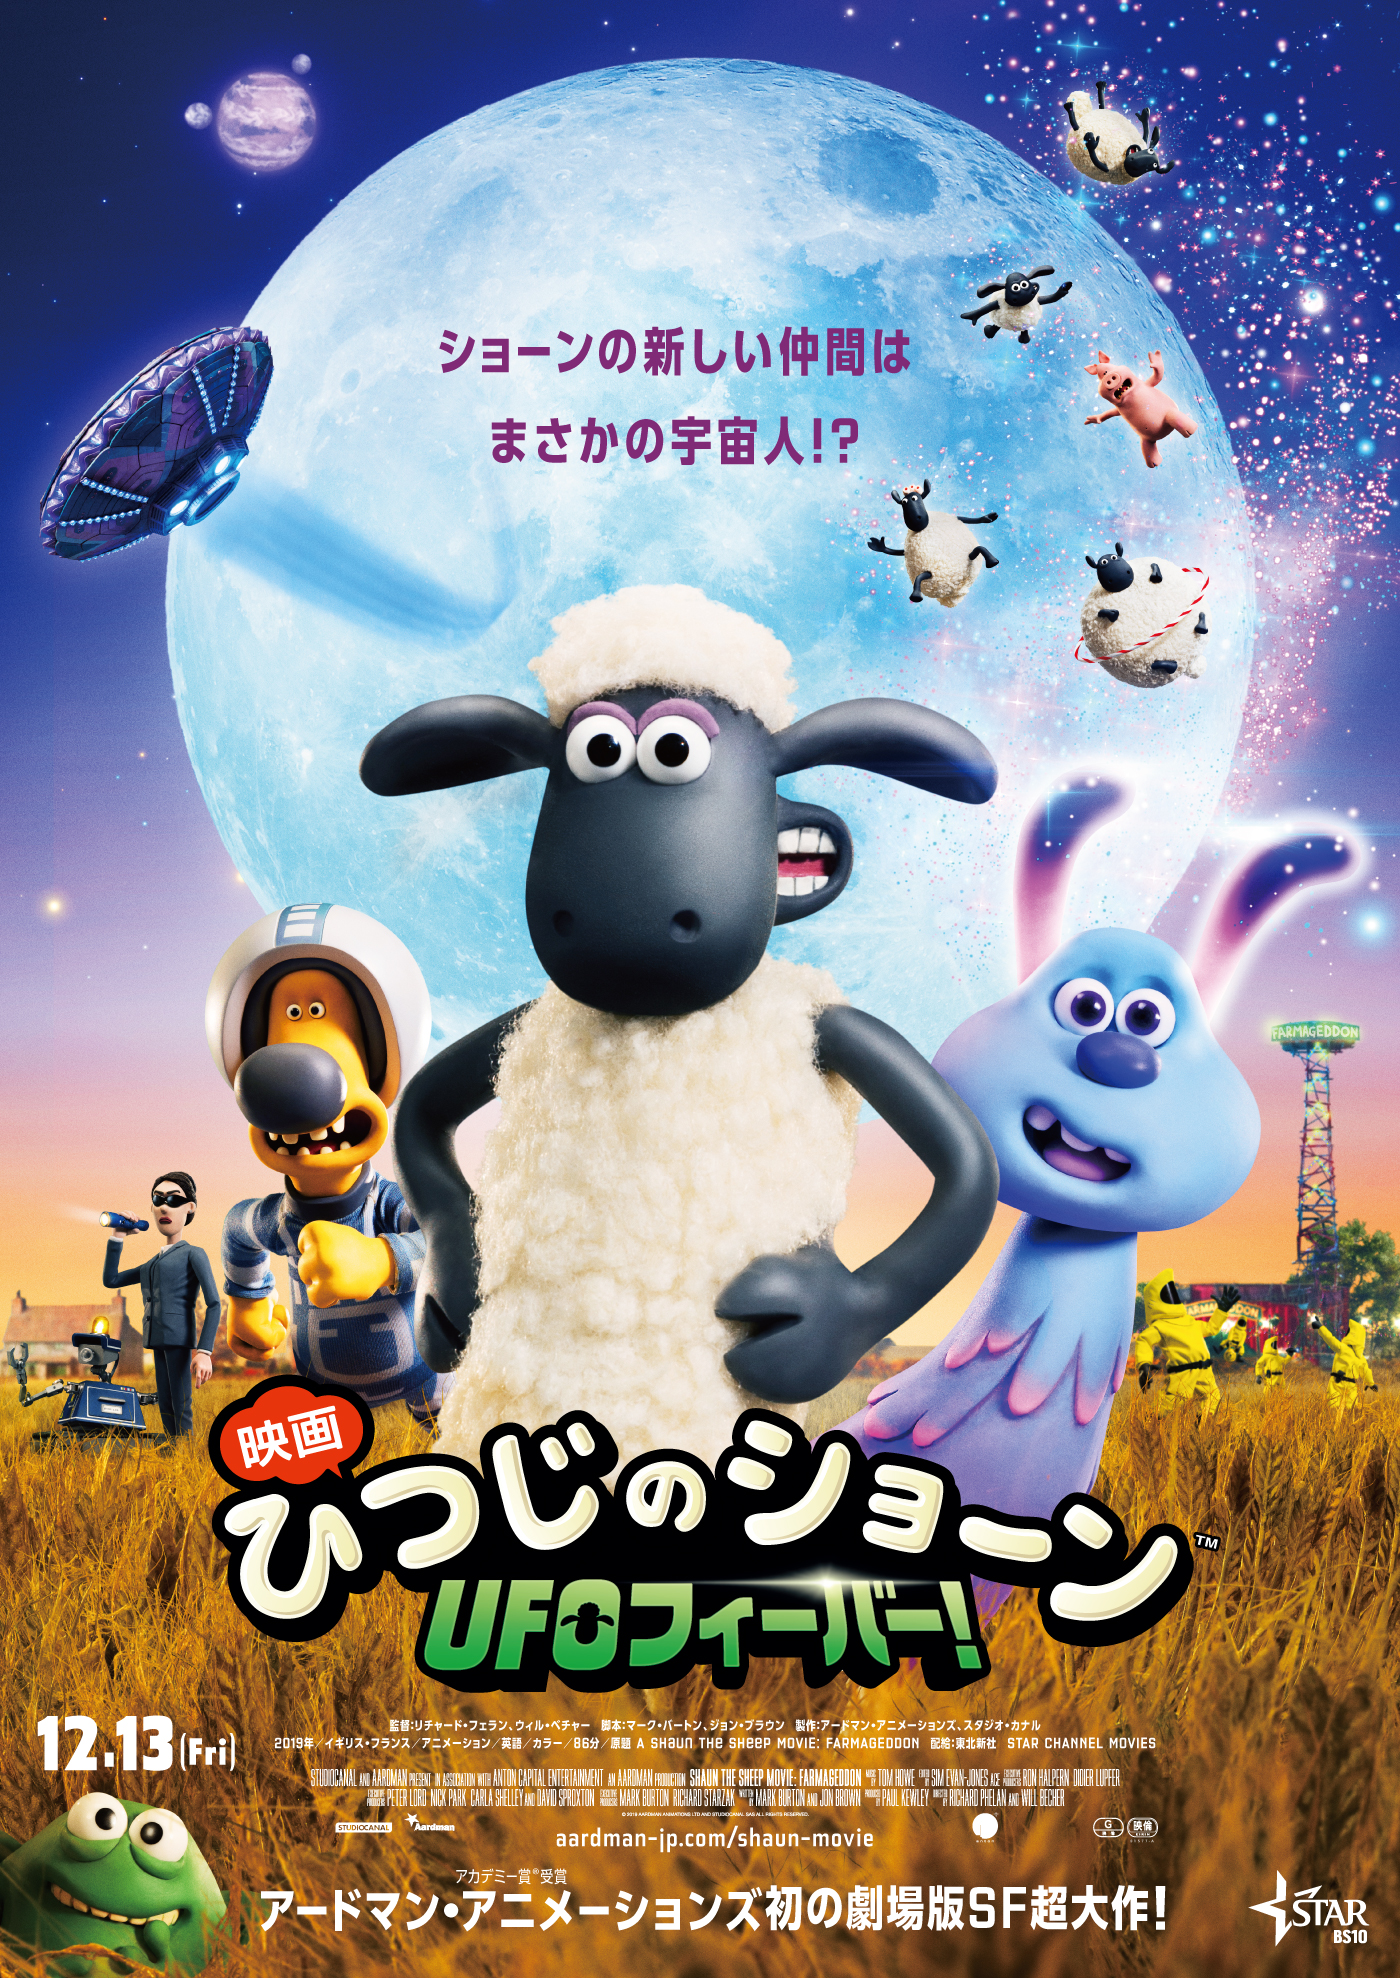 © 2019 Aardman Animations Ltd and Studiocanal SAS. All Rights Reserved.